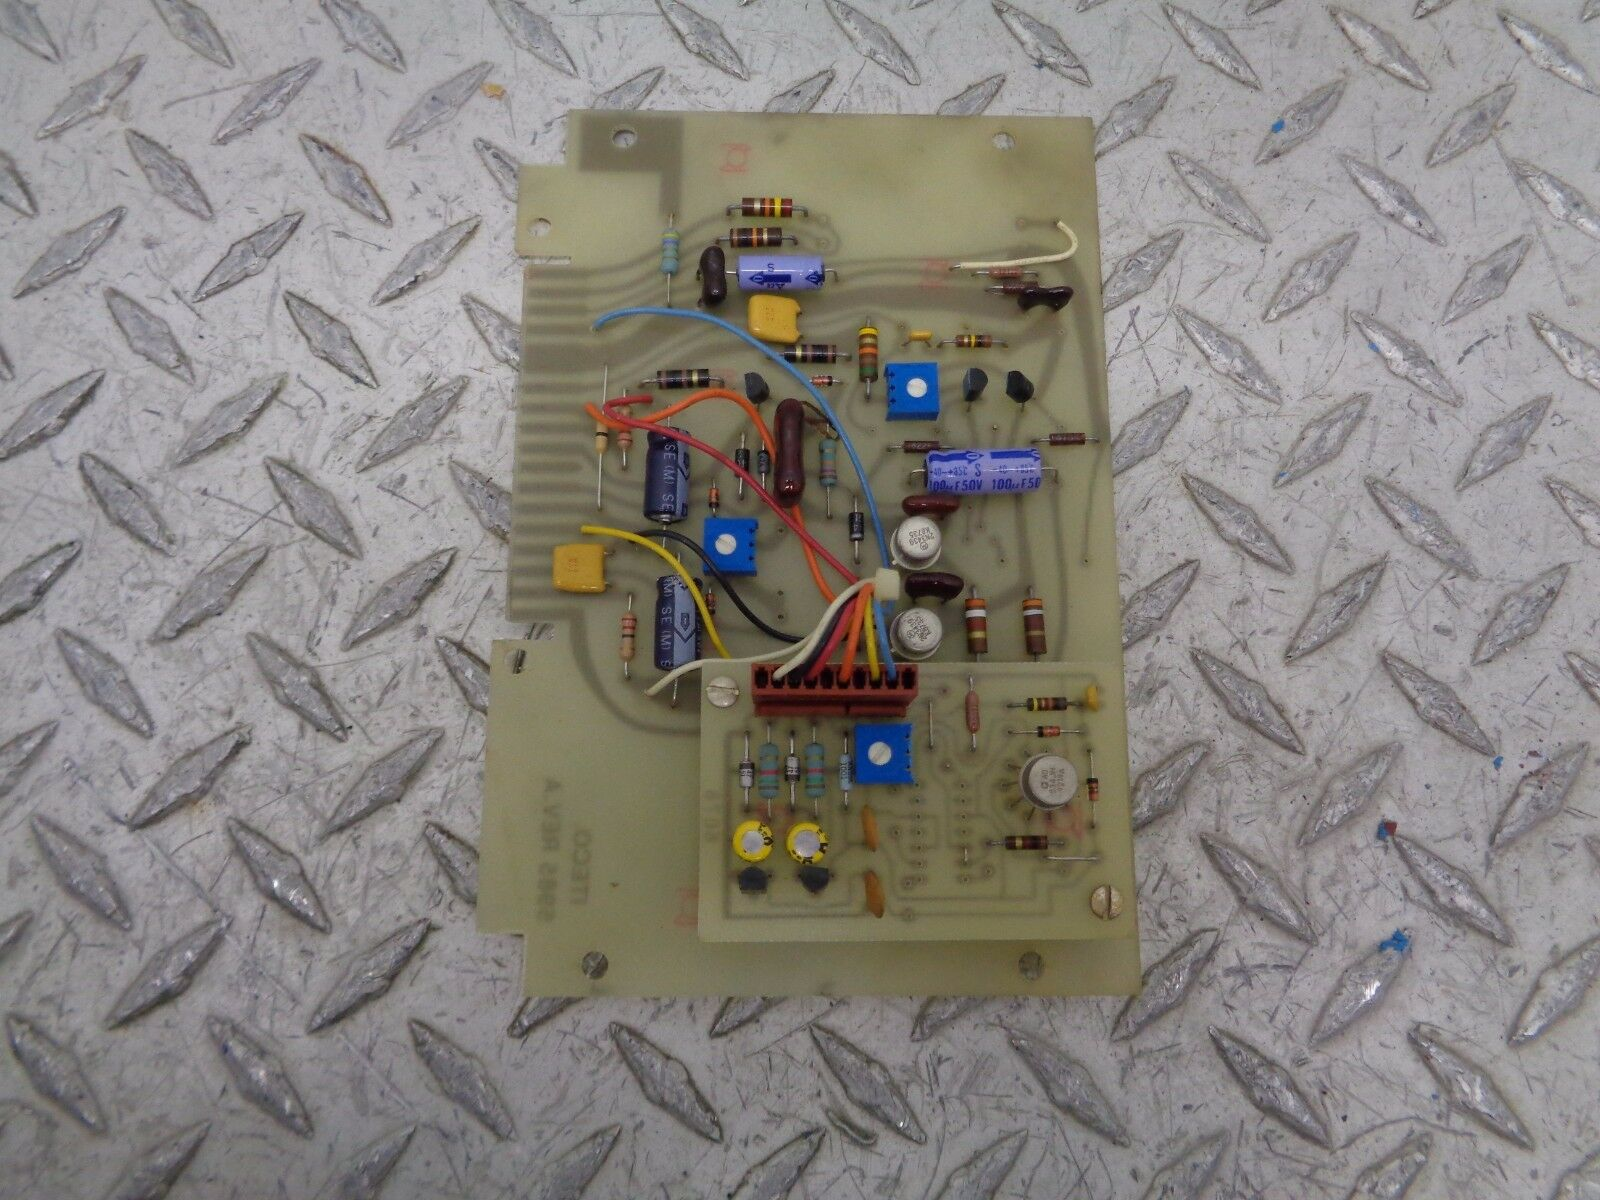 Iteco 5985 Rev A Pcb 5015 Picclick Soldering Prototype Copper Printed Circuit Board 50x70mm 2 Ebay 1 Of 2only Available